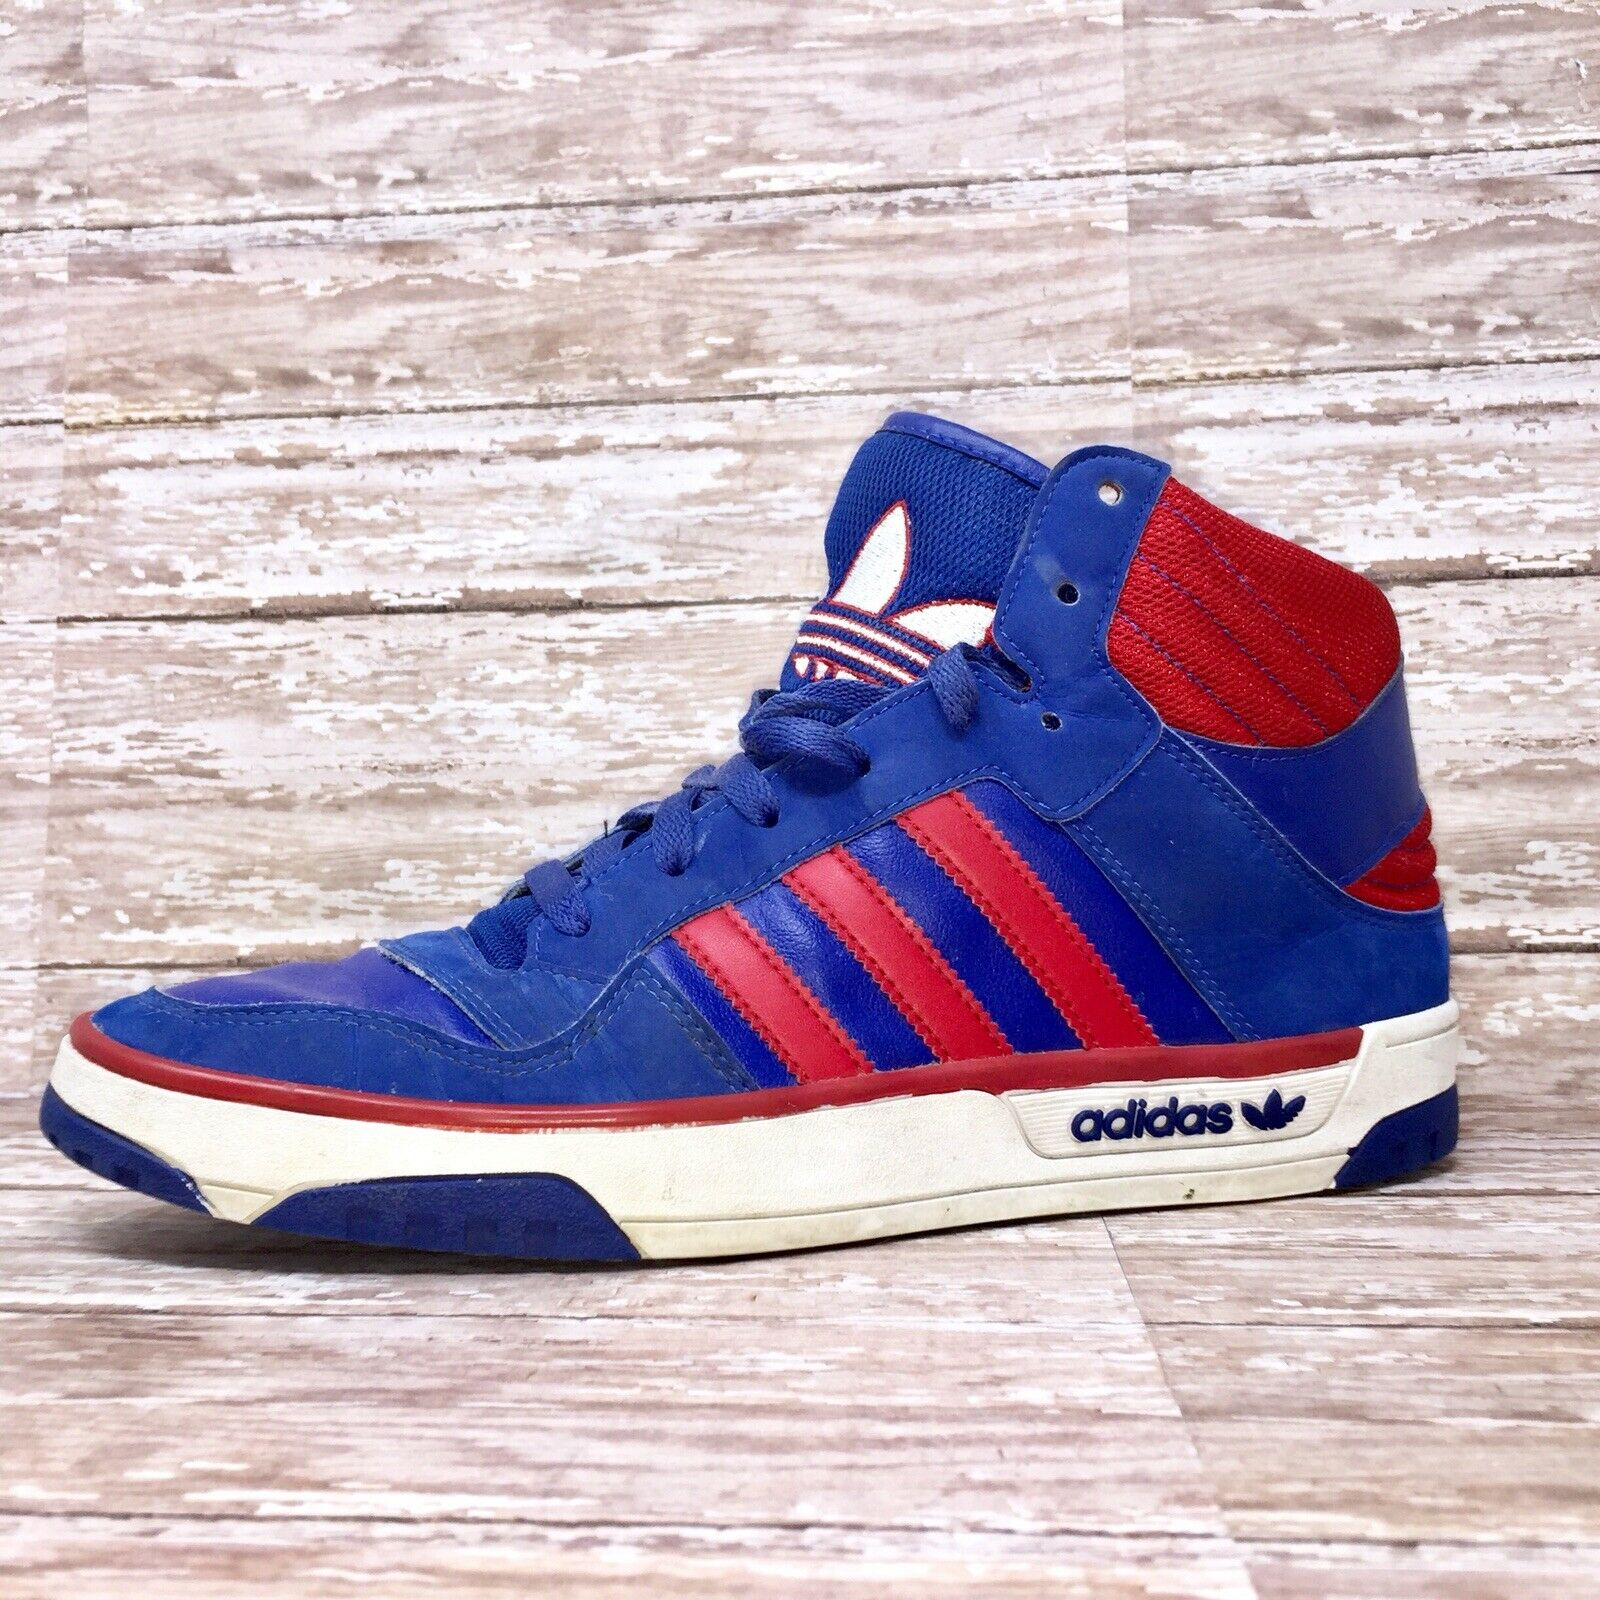 ADIDAS Hi Top Post Player Vulc Basketball Sneakers Trainers Red bluee 9.5